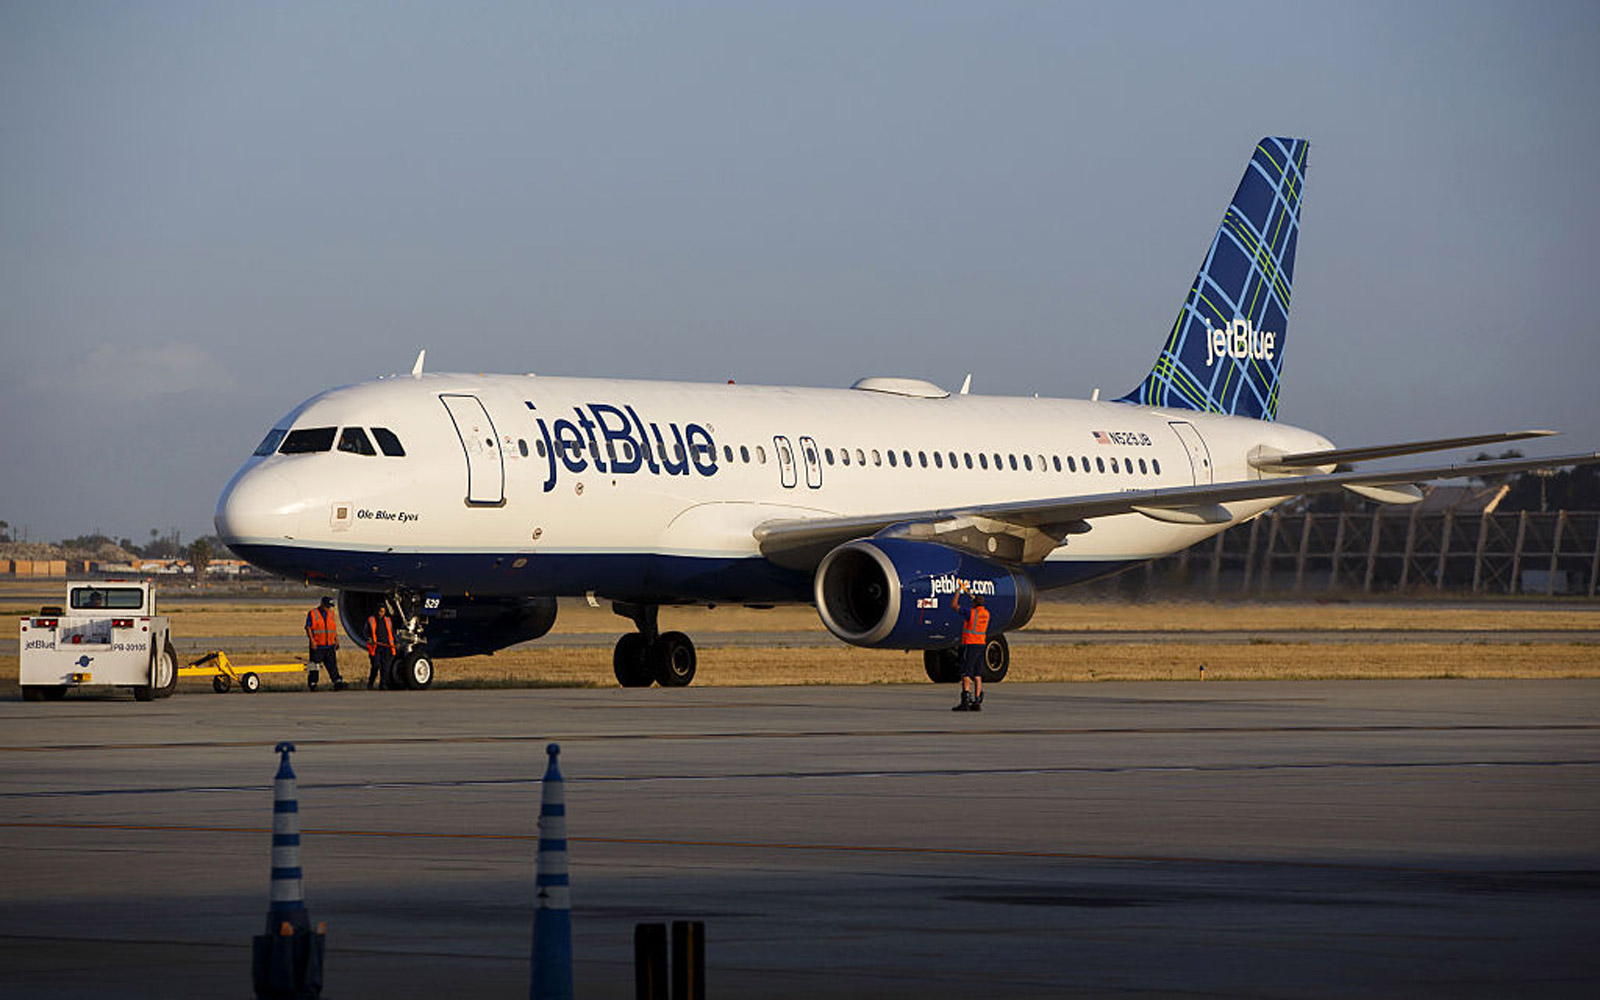 A JetBlue Airways Corp. Airbus Group SE A320 aircraft taxis on the tarmac at Long Beach Airport (LGB) in Long Beach, California, U.S., on Monday, April 25, 2016. JetBlue Airways Corp. is scheduled to release earnings figures on April 26. Photographer: Pat